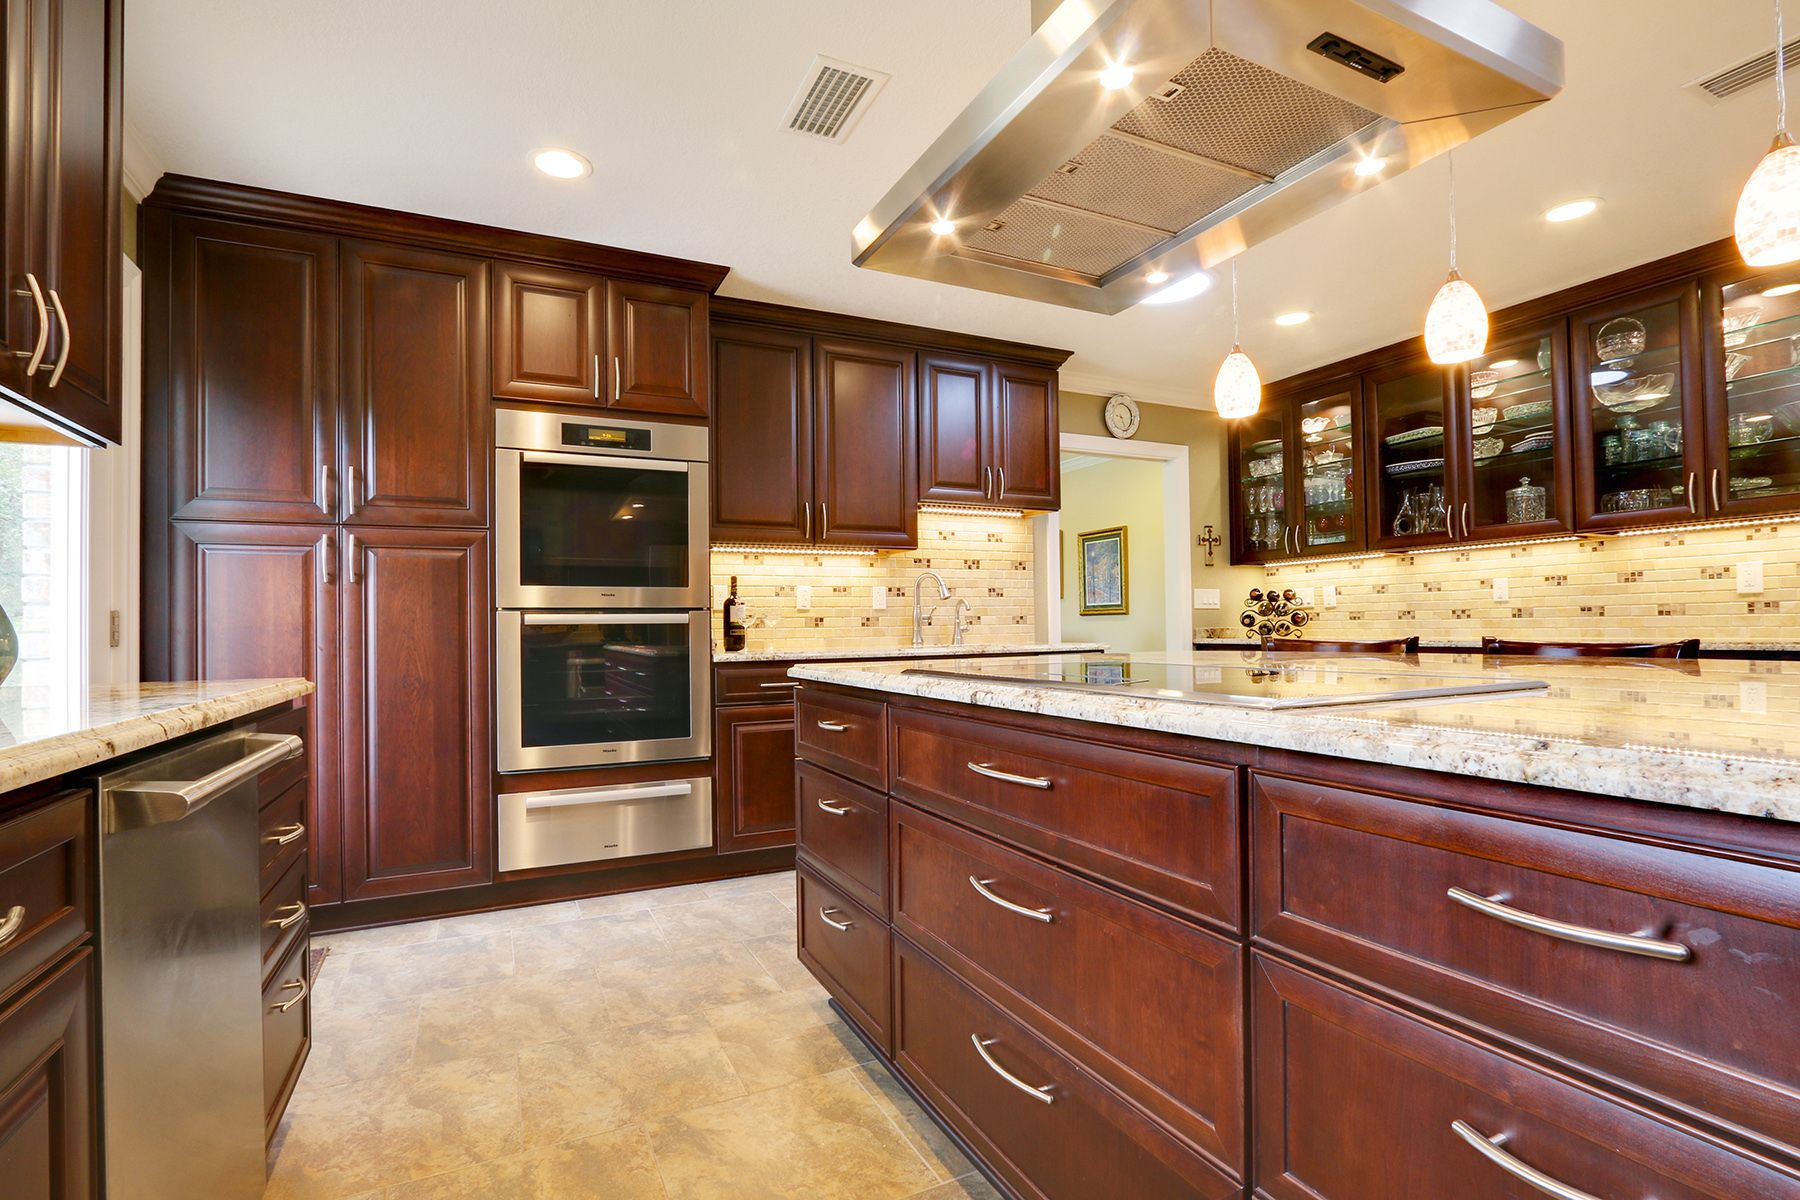 A Remodeled Kitchen In Pensacola Florida Now Has A Coherent And Soothing Color Scheme Designer Ashley Duby Kitchen Design Dark Brown Cabinets Brown Cabinets